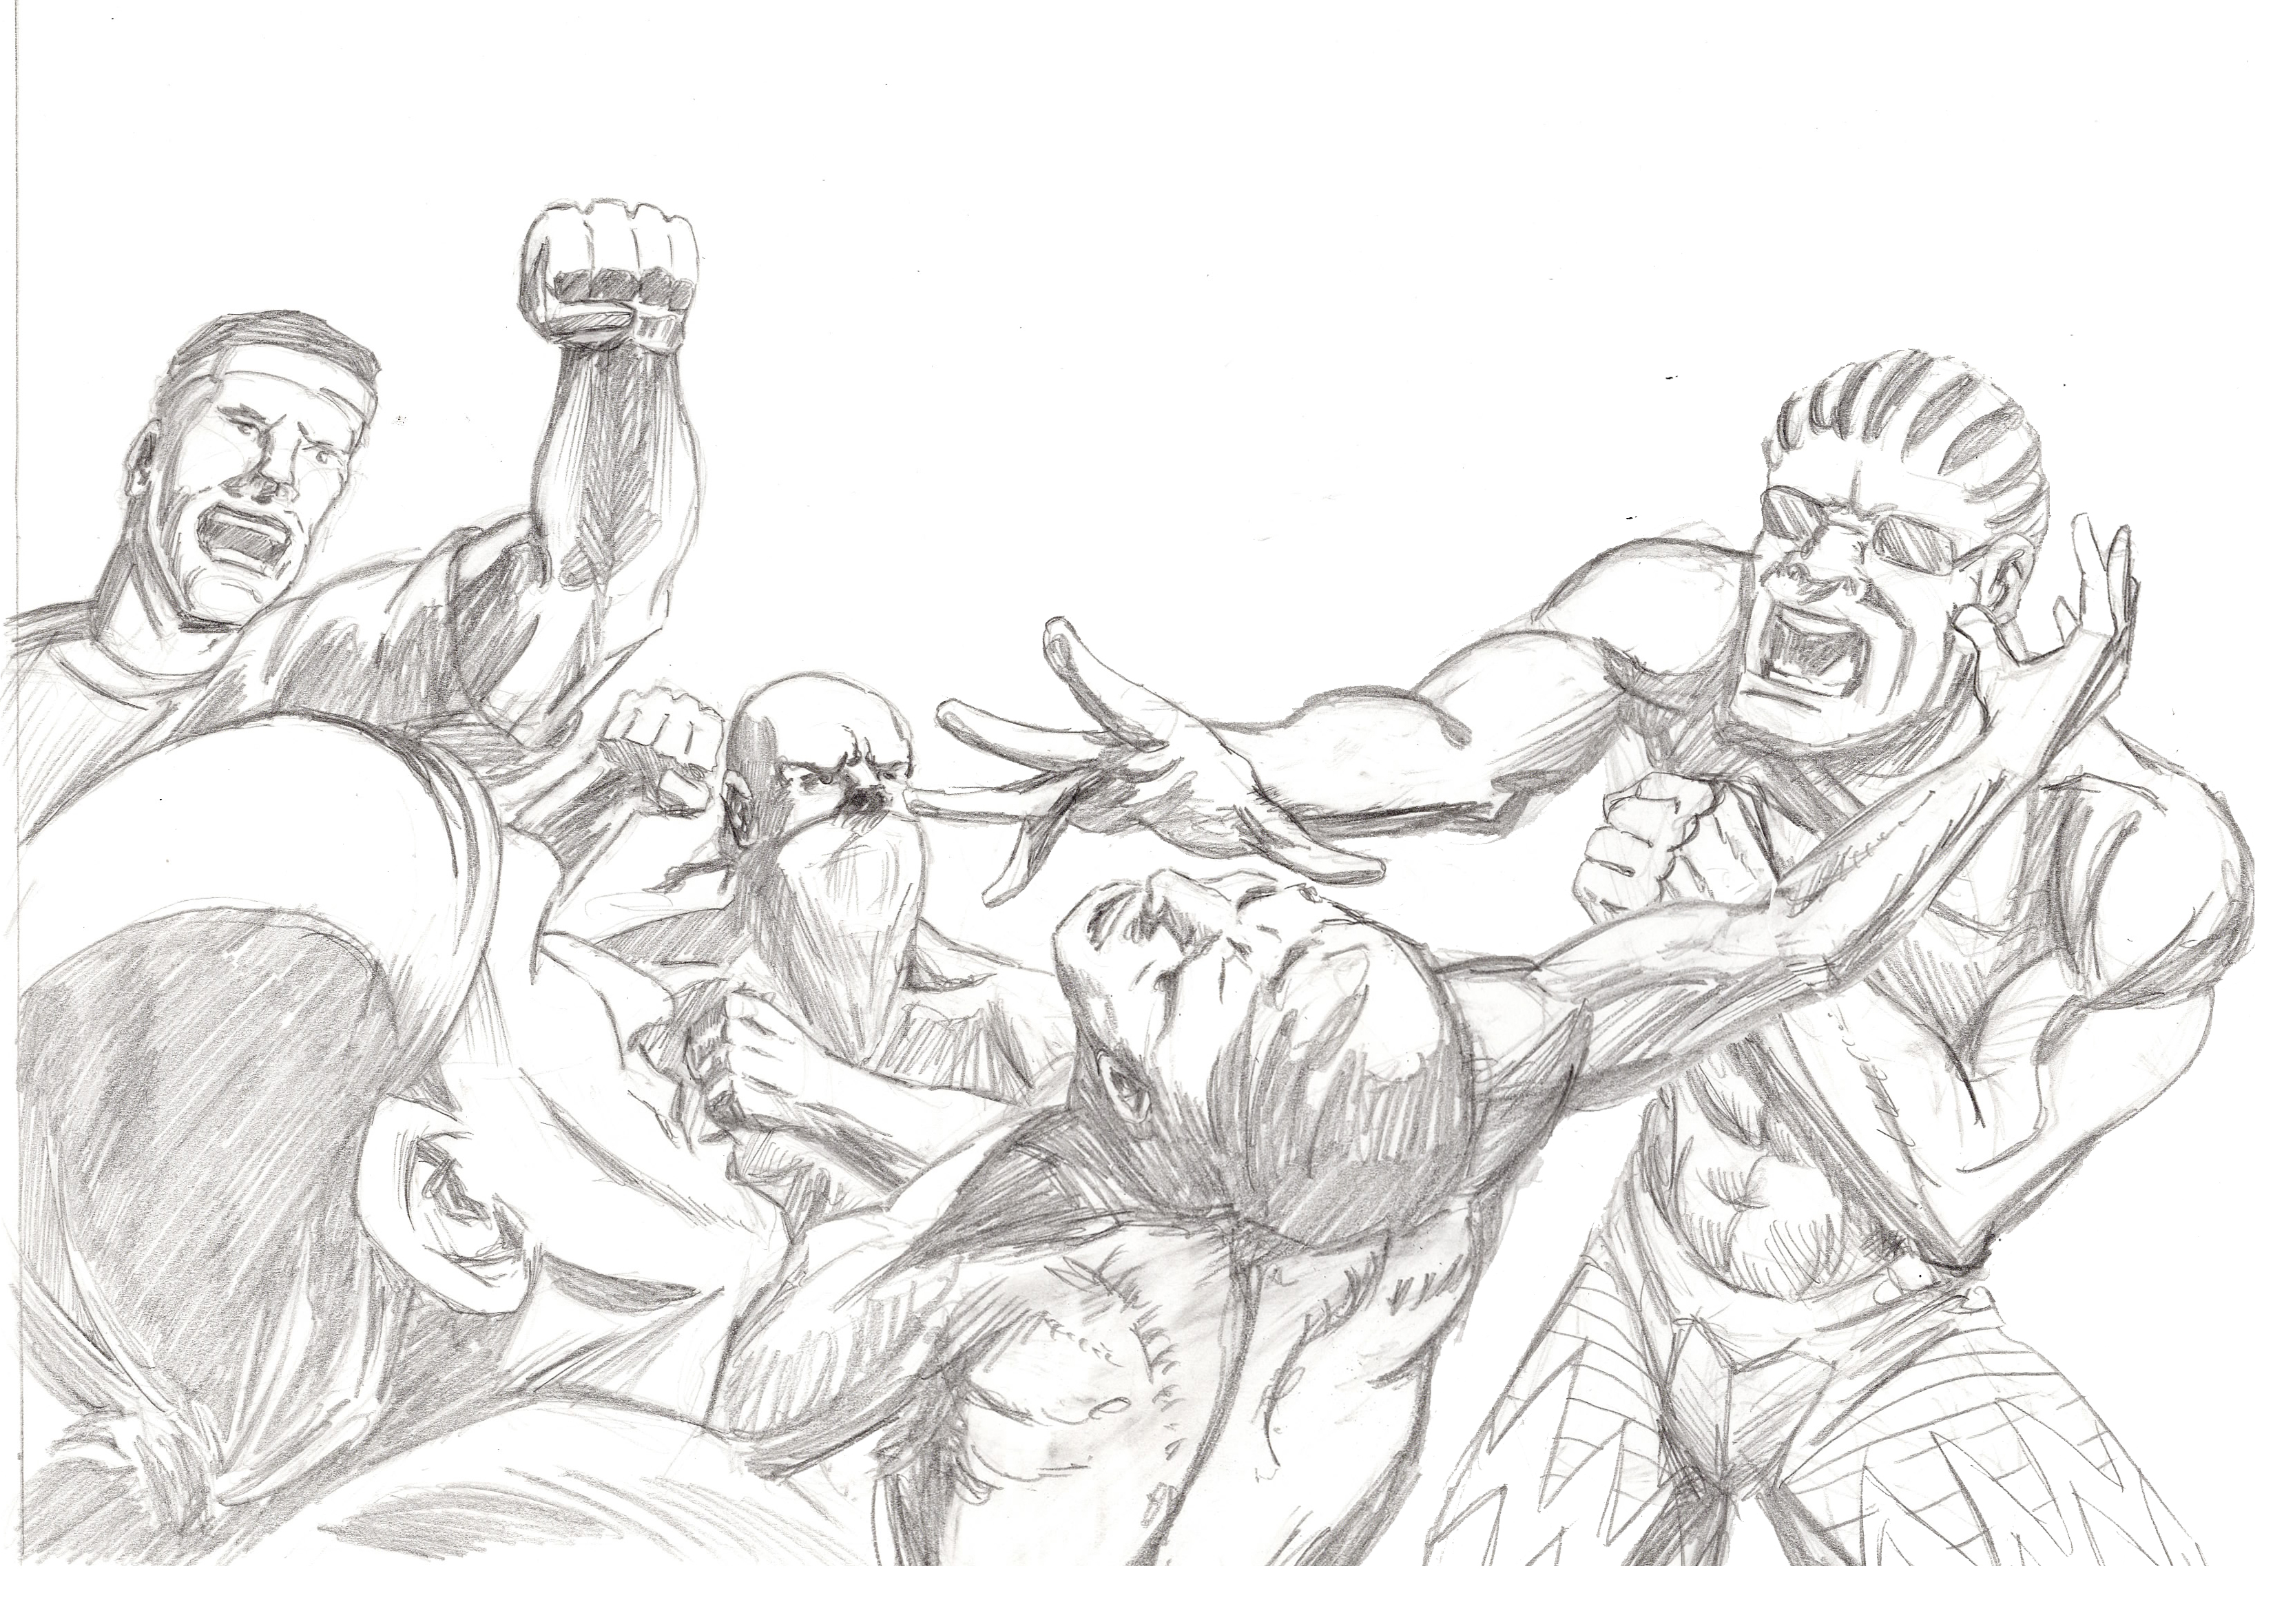 Tied Down Pencil Drawing of a Gang Fight